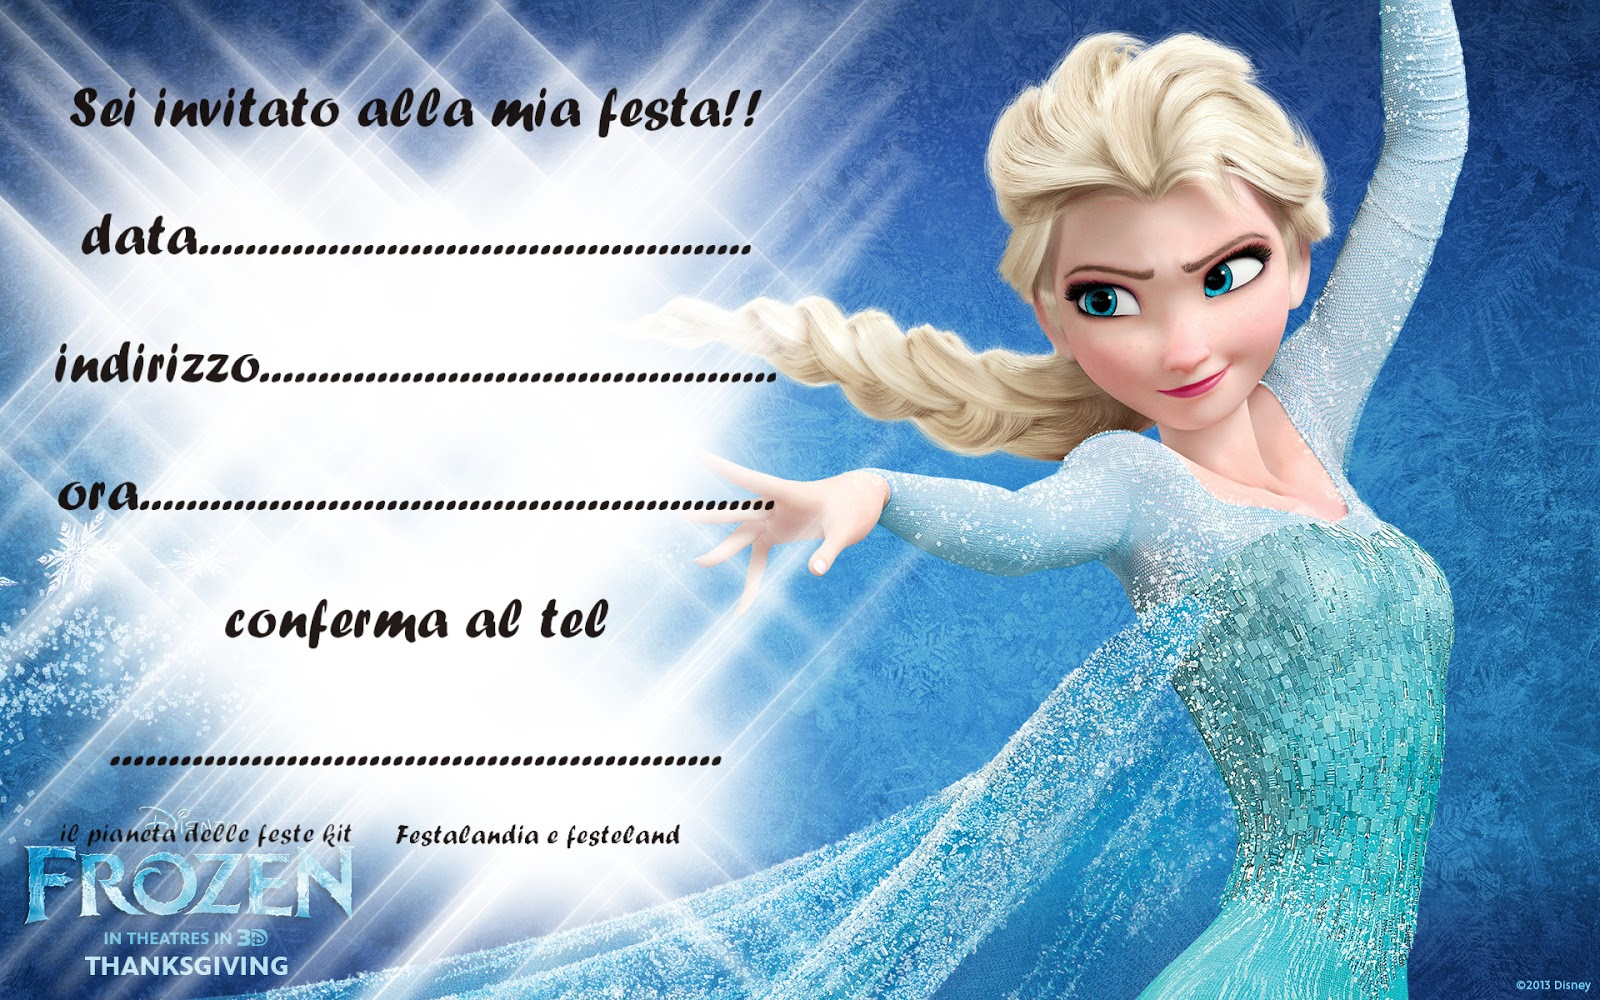 Preferenza Festalandia e Festeland: FROZEN PARTY LP98